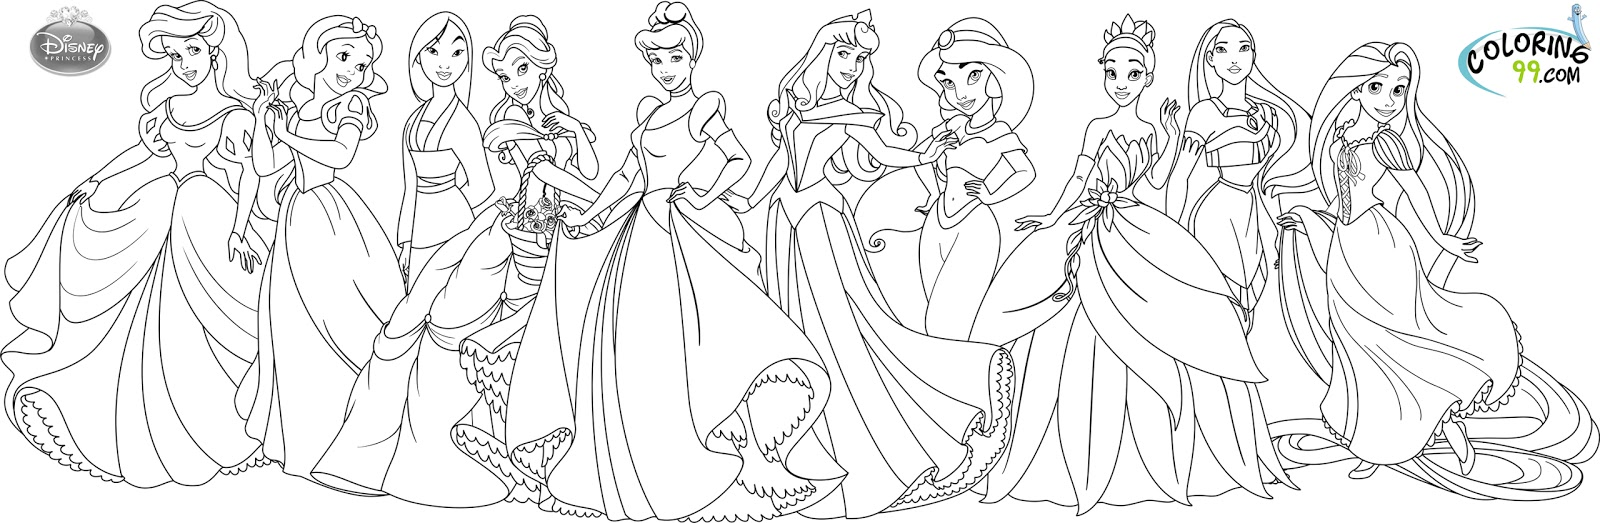 Disney Princess Coloring Pages Minister Coloring Princess Coloring Pages